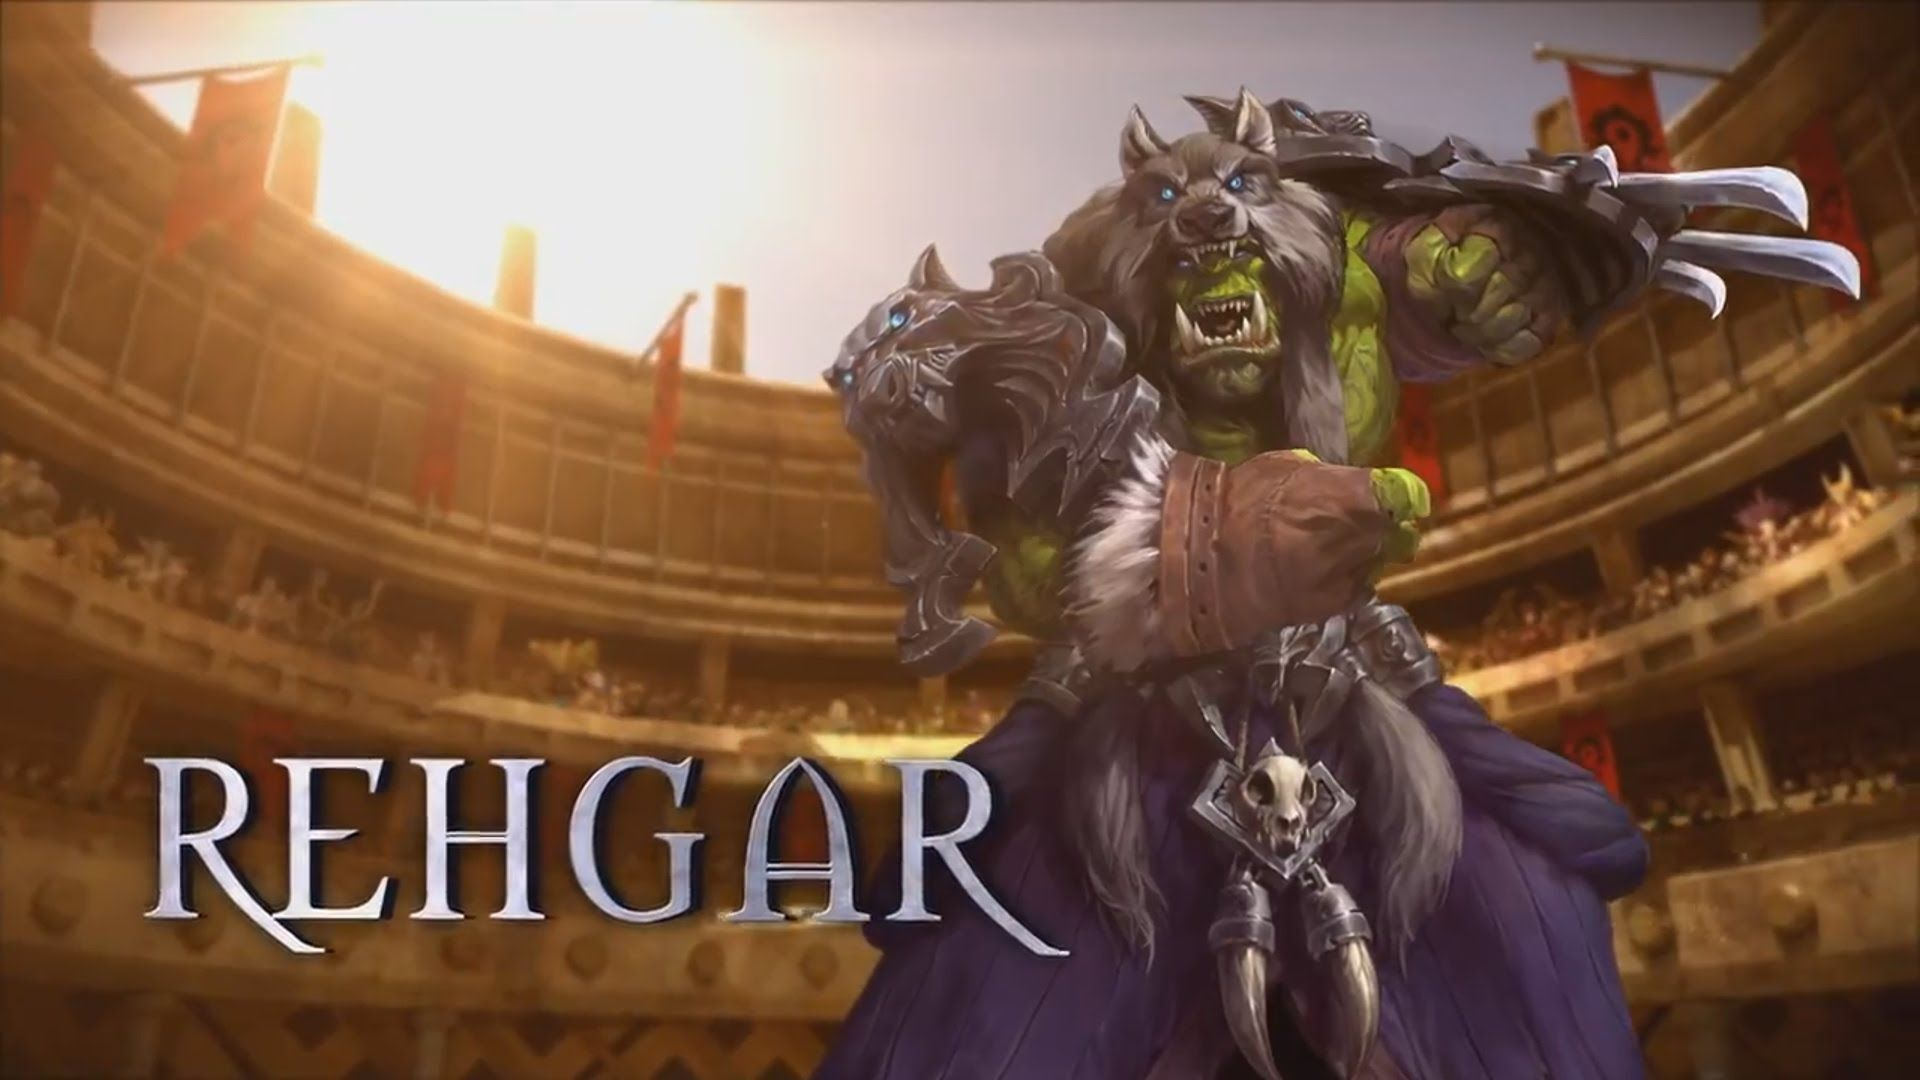 The Story Of Rehgar Earthfury Lore Heroes Of The Storm Hero Storm Now, having put that life aside, he serves as a simple shaman of the earthen ring. the story of rehgar earthfury lore